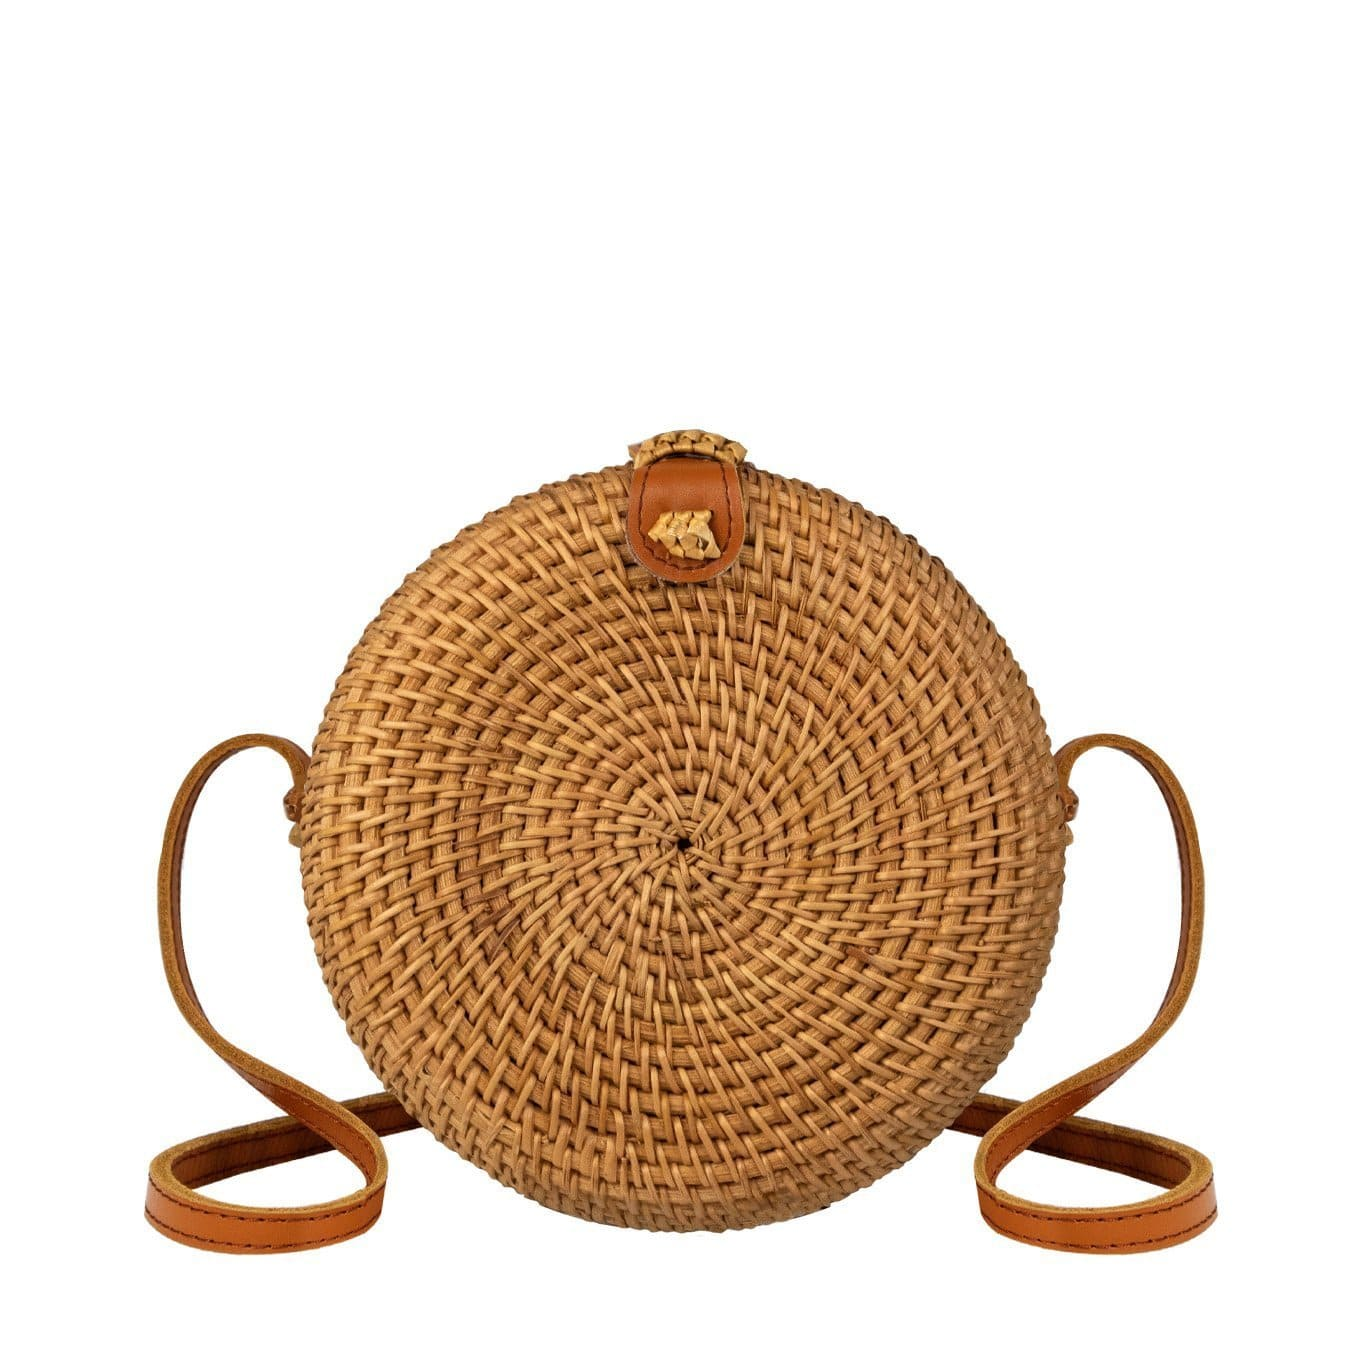 Made Terra Straw bags Genuine Leather Round Rattan Bag (7-inch) | Hand Woven Boho Bali Ata Rattan Crossbody Handbags